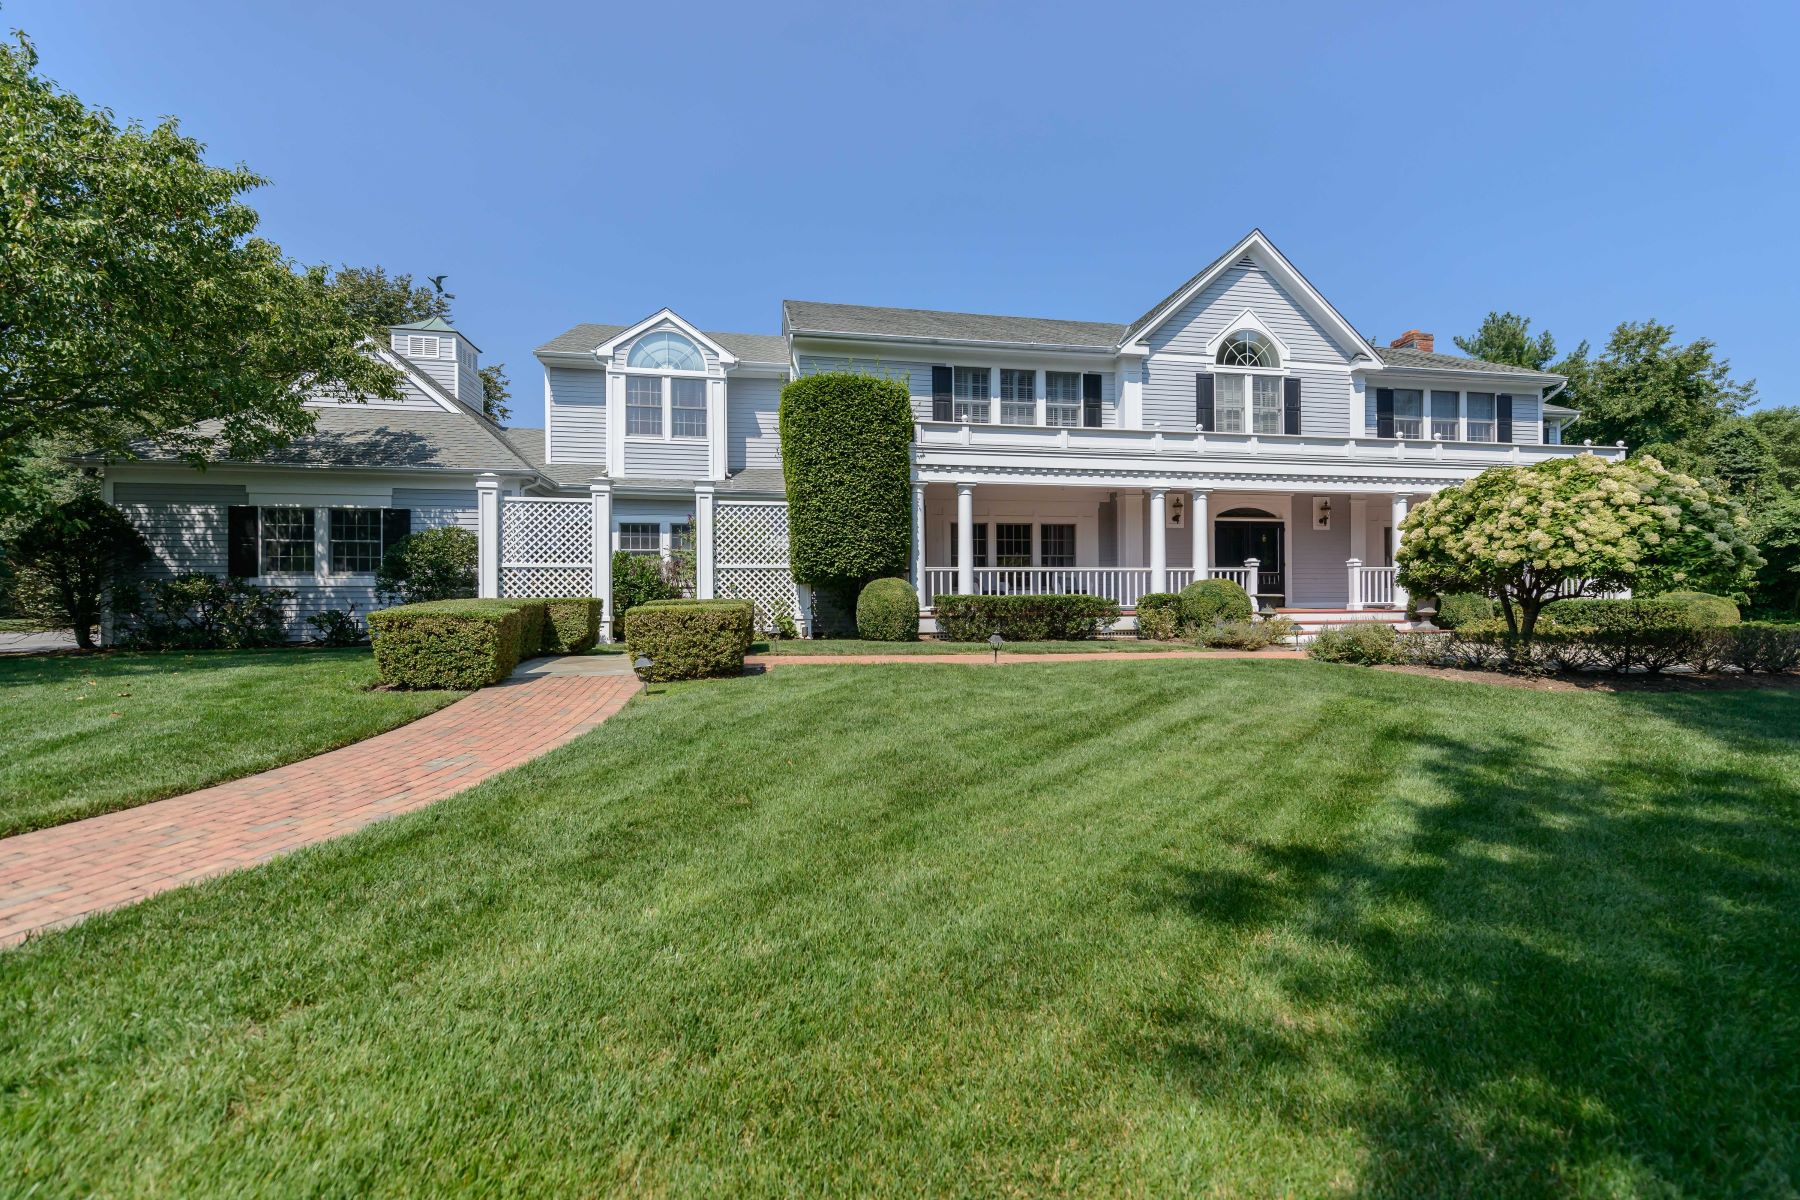 Single Family Home for Sale at Colonial 9 Fox Meadow Ln Lloyd Harbor, New York, 11743 United States